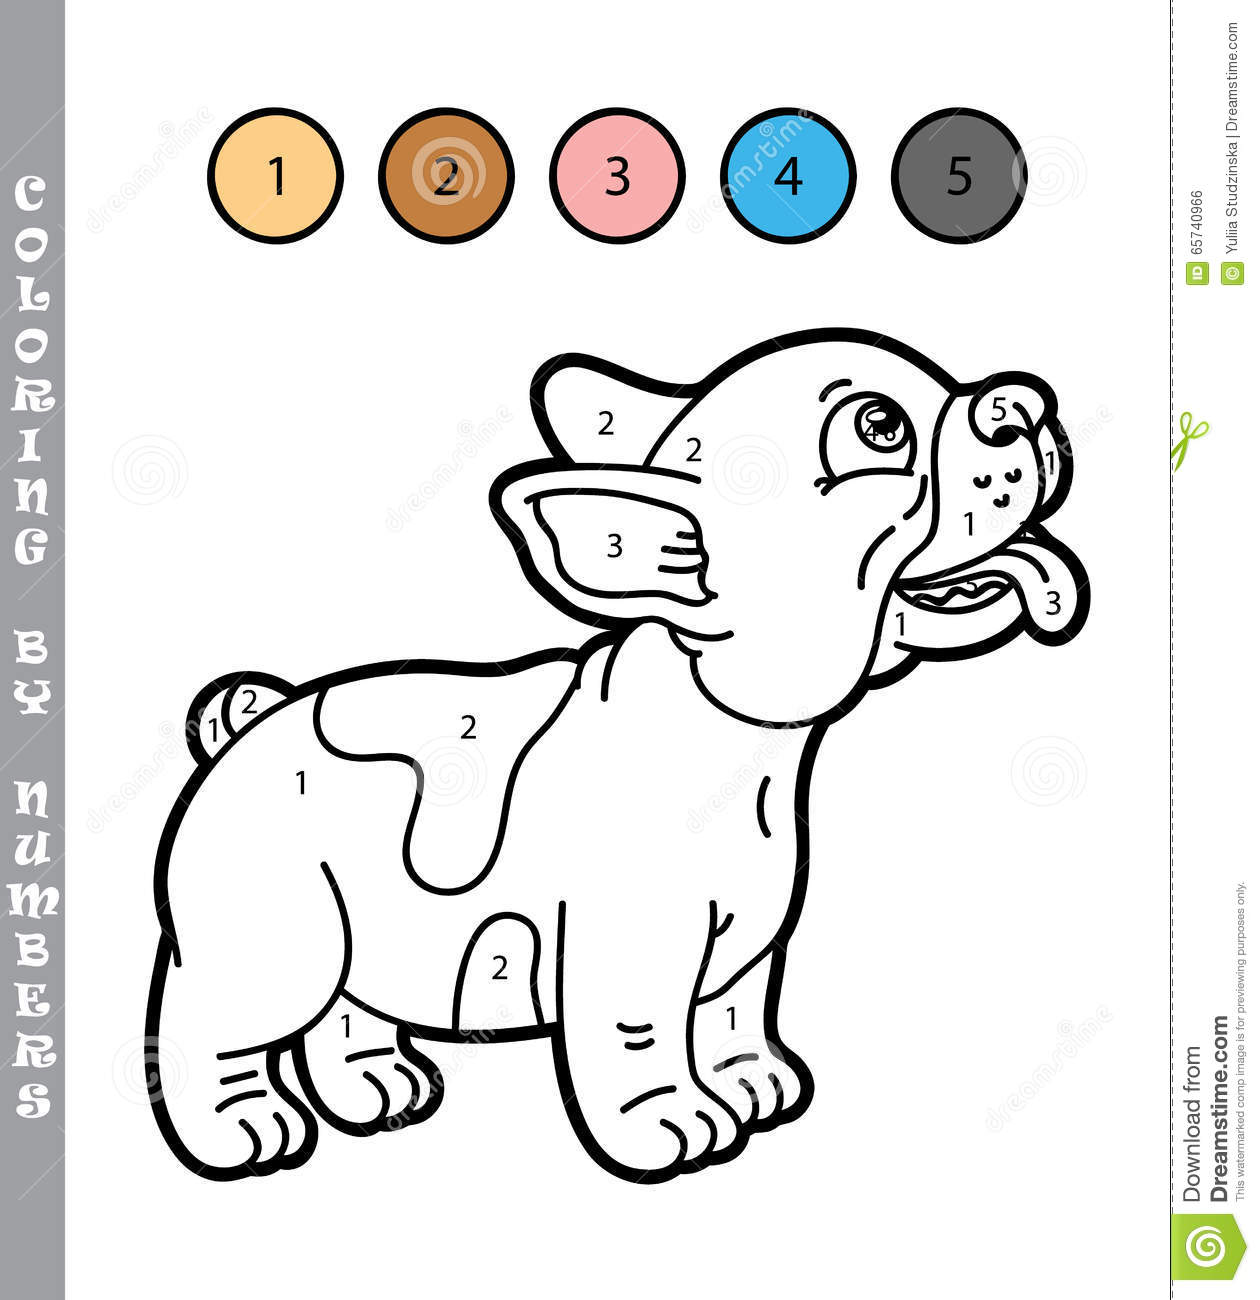 Funny puppy coloring game. stock vector. Illustration of exercise ...